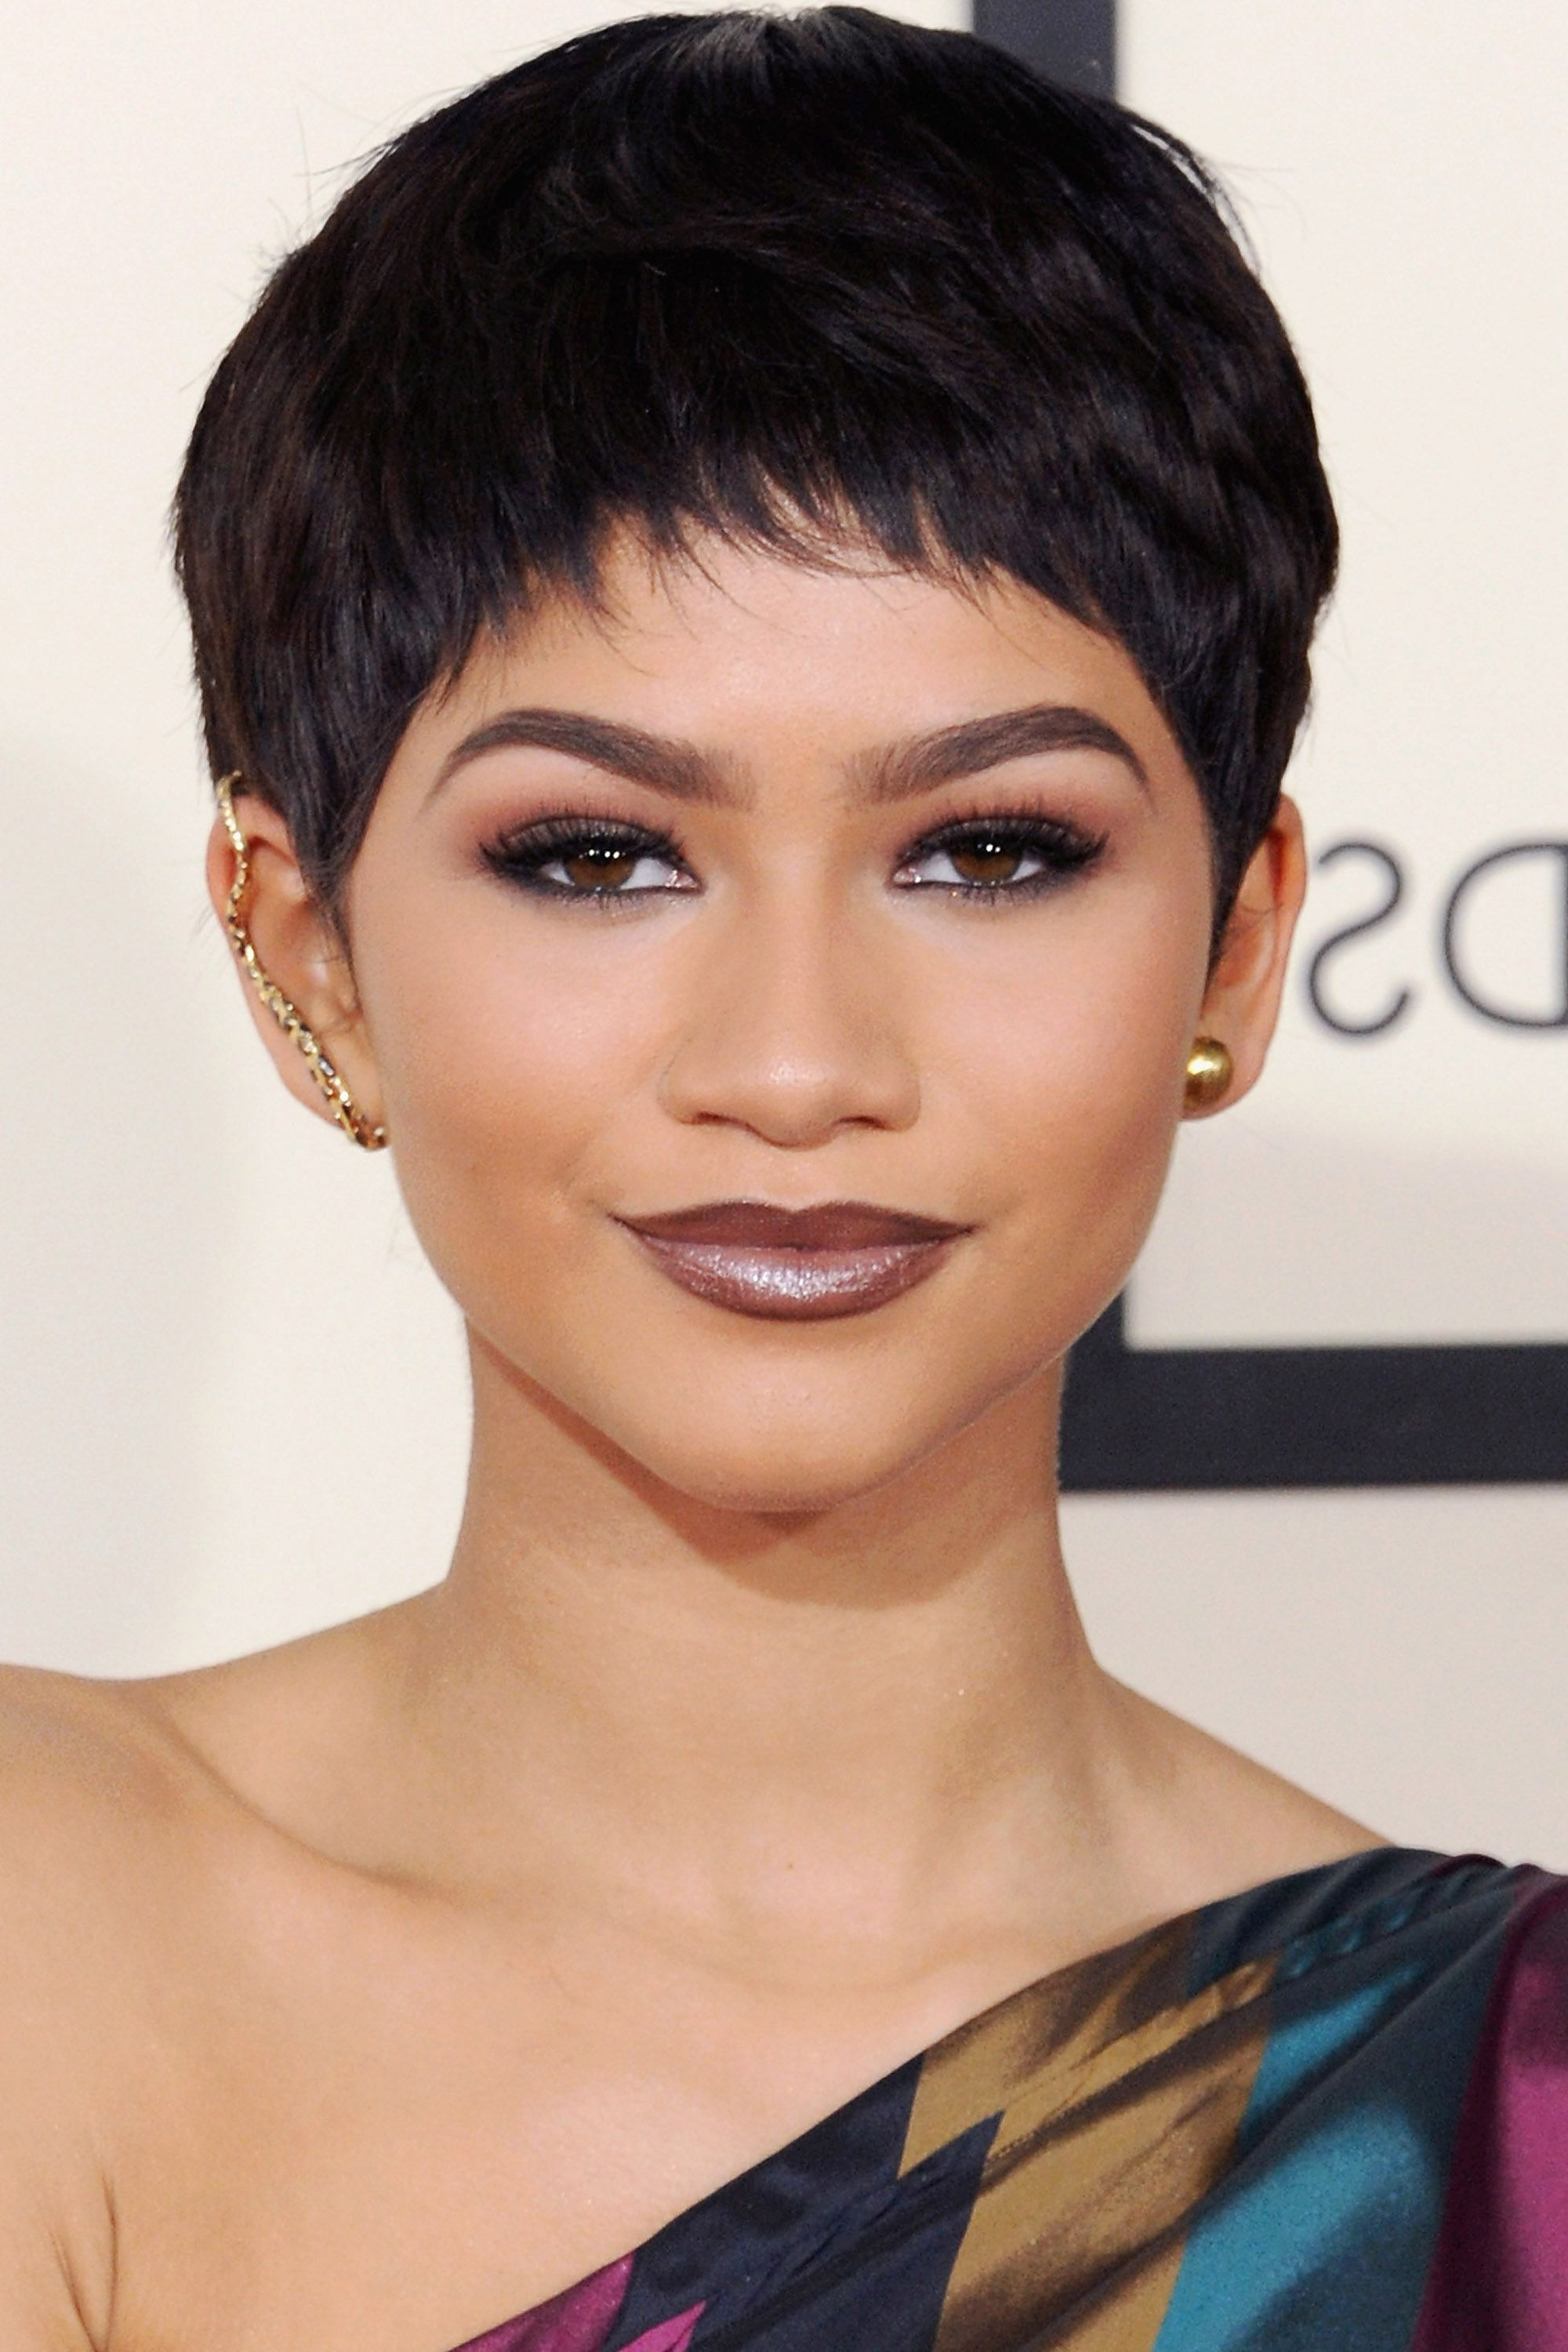 50+ Pixie Cuts We Love For 2018 – Short Pixie Hairstyles From In Super Short Haircuts For Girls (View 5 of 25)